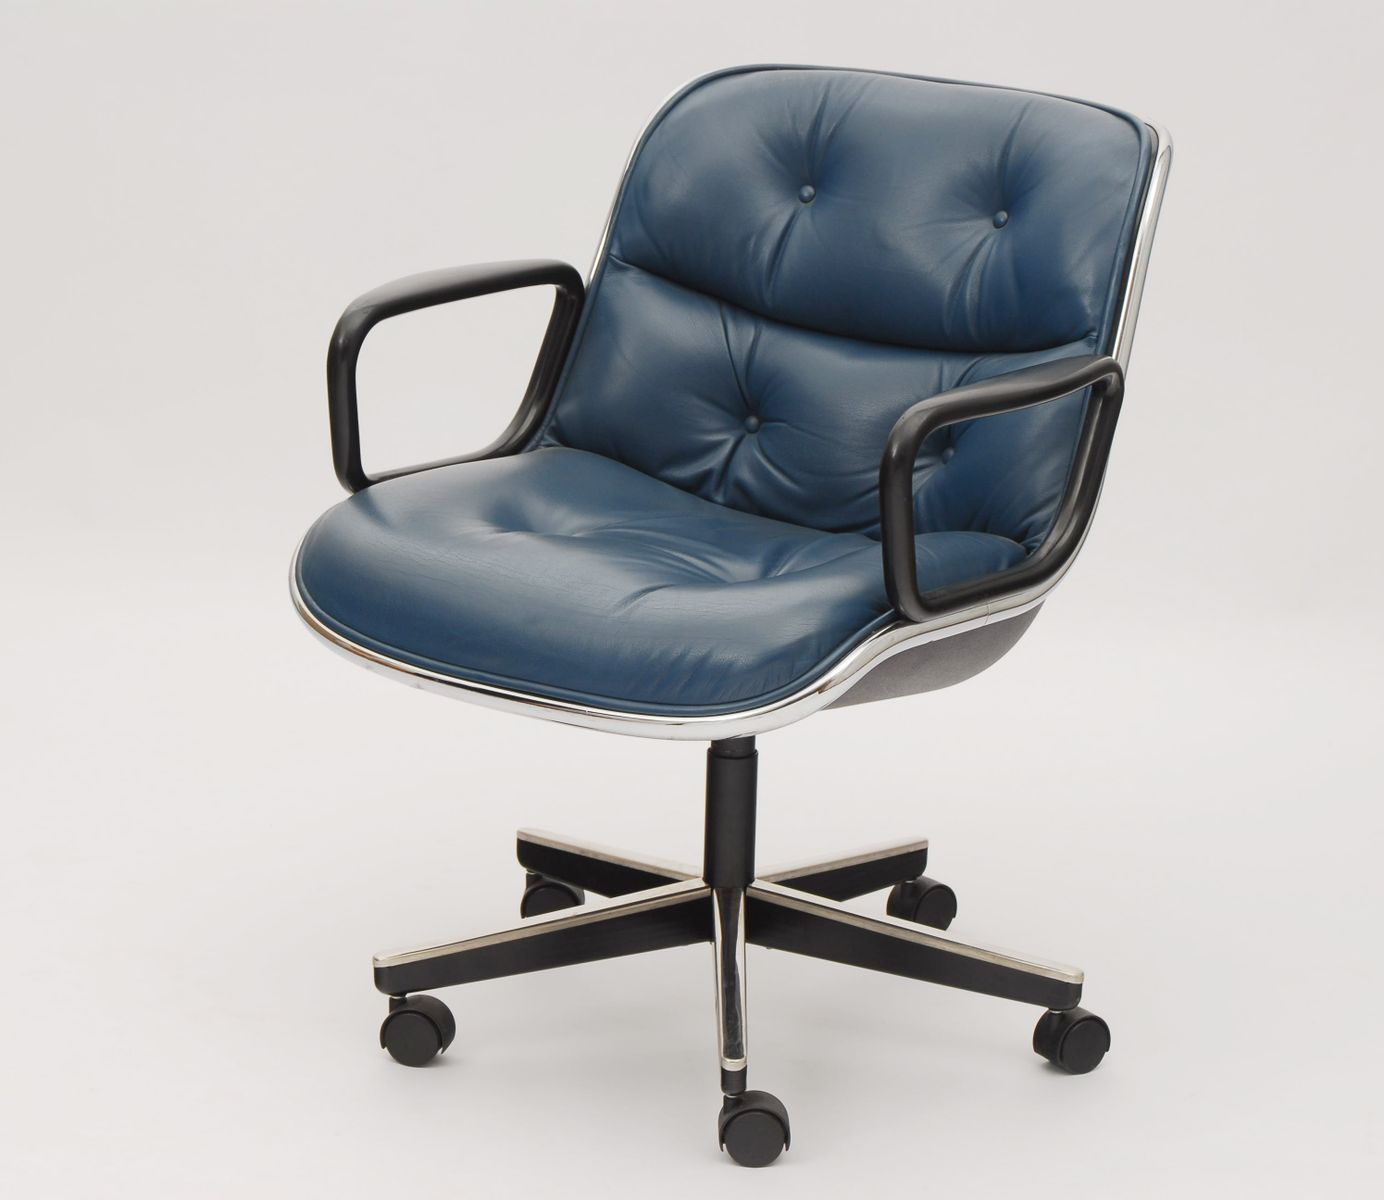 office chair by charles pollock for knoll international for sale at